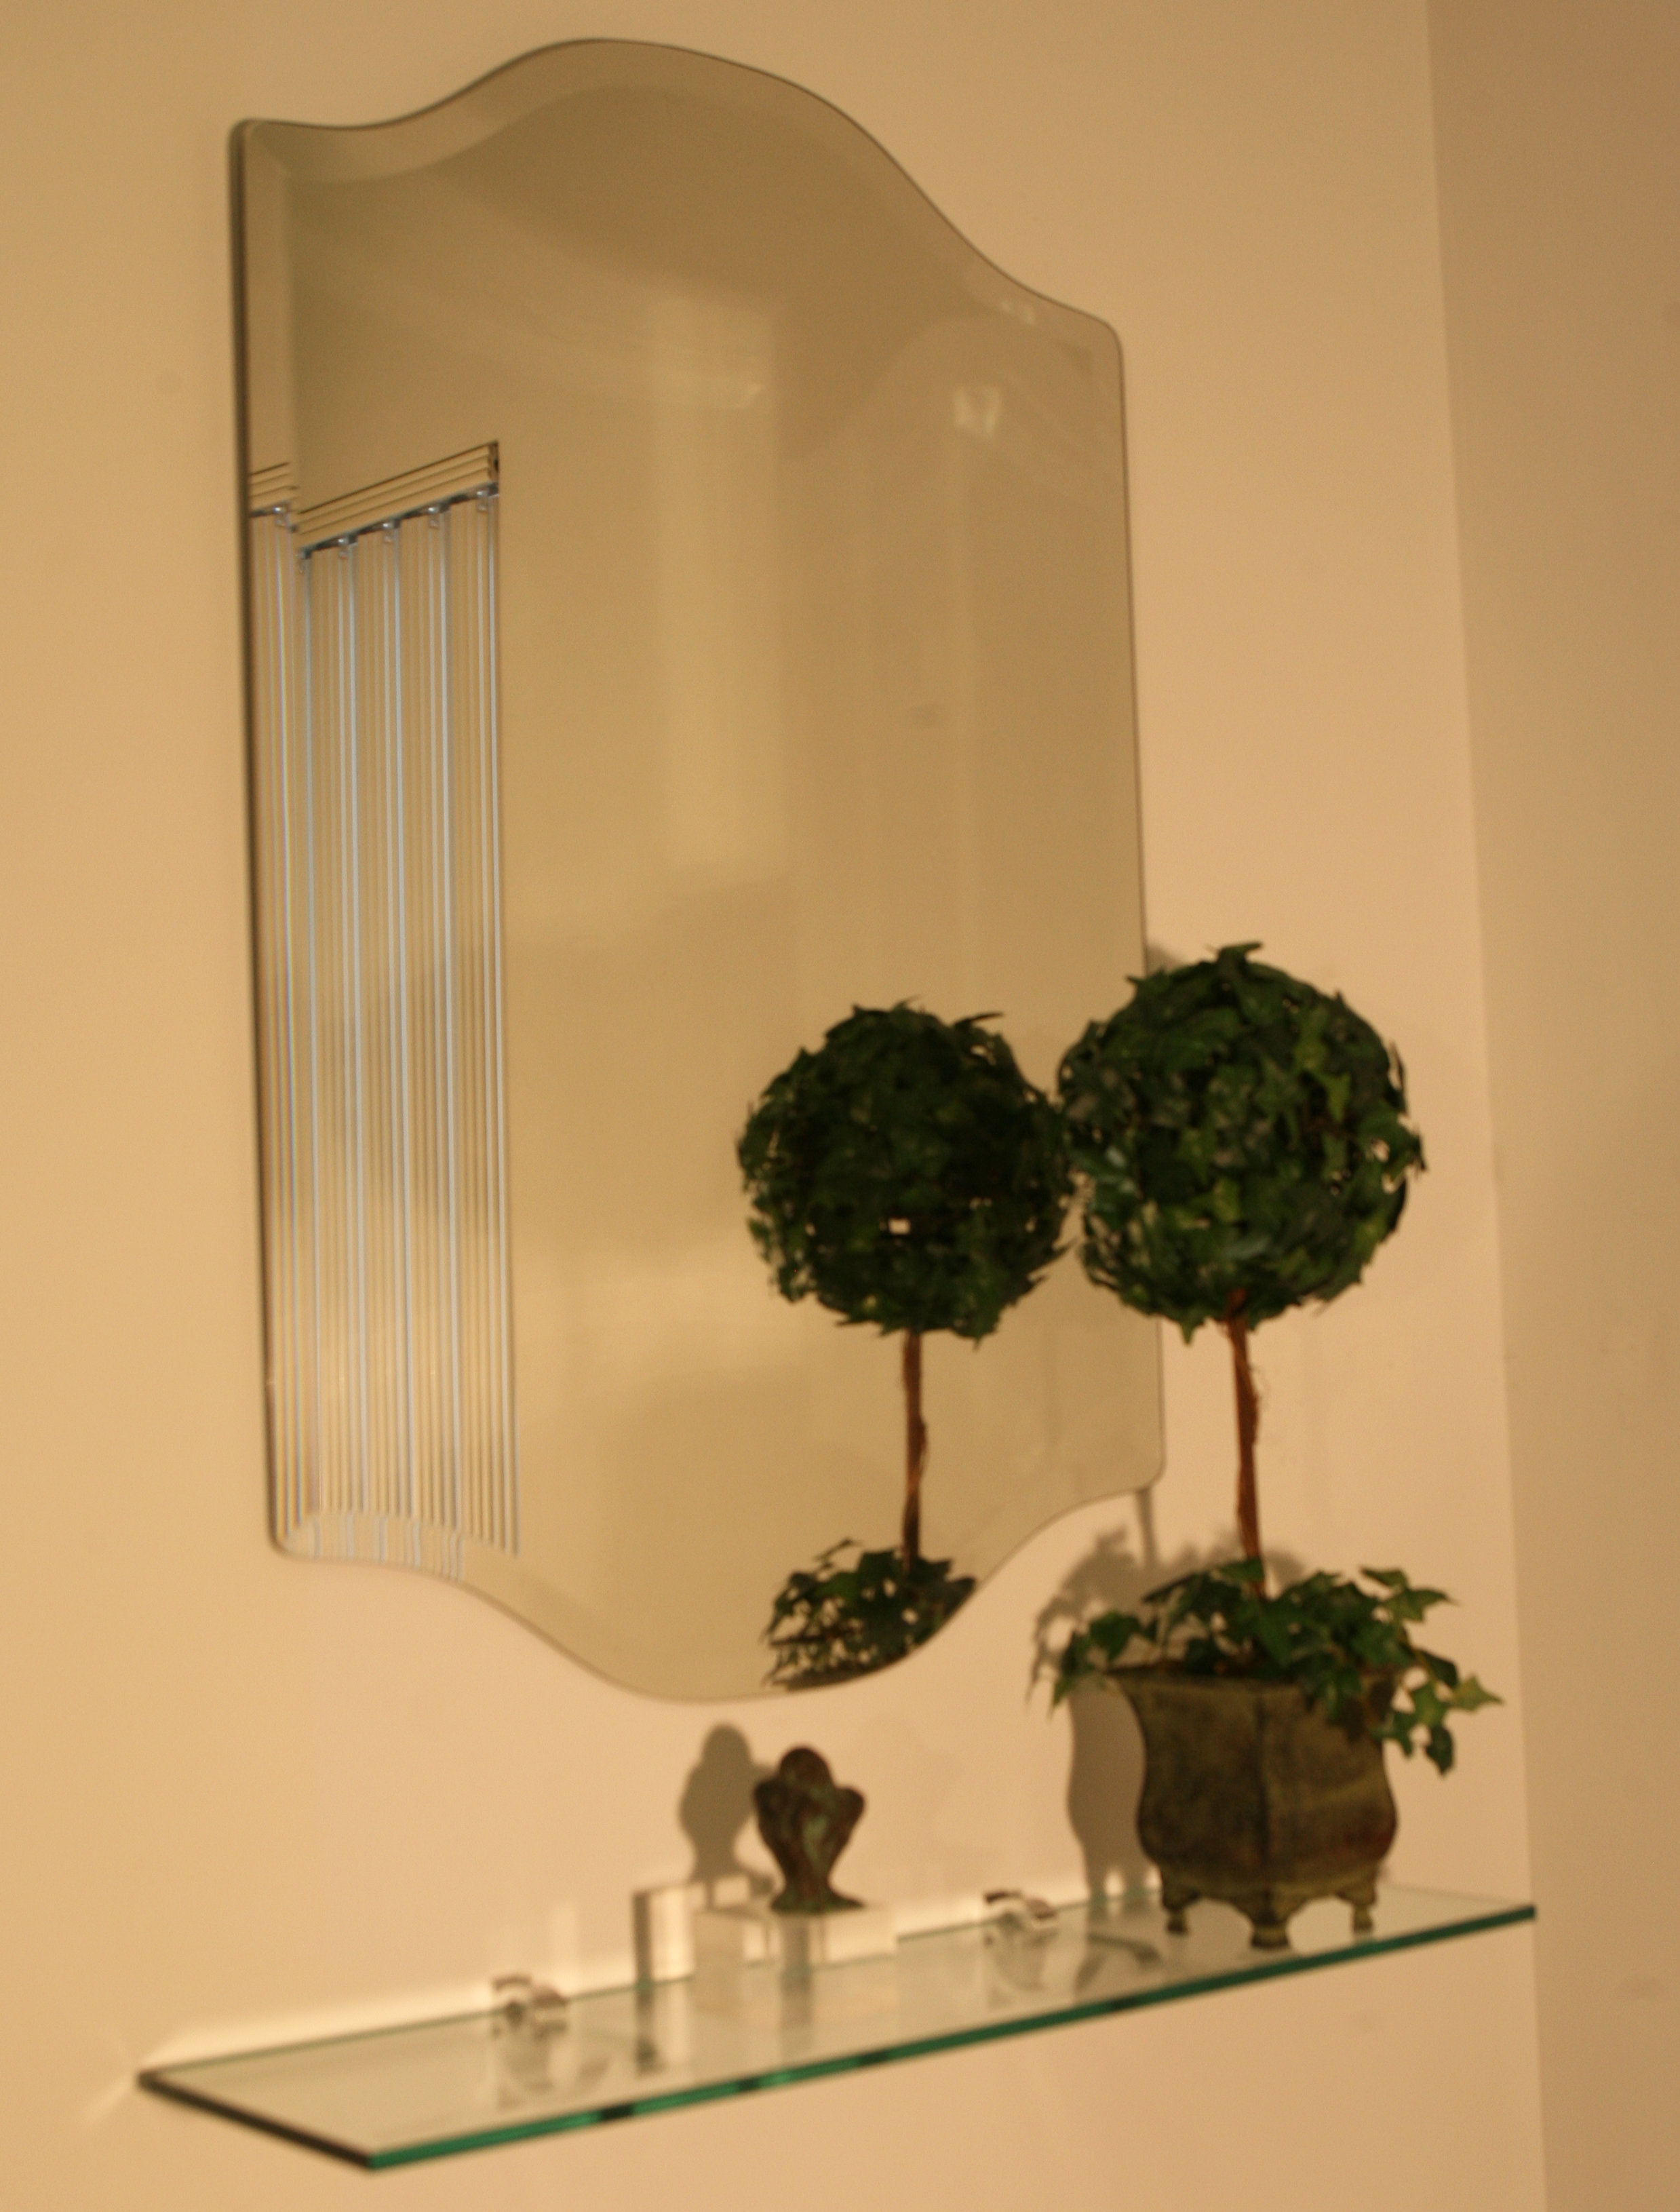 Egor Accent Mirror Intended For Egor Accent Mirrors (View 11 of 30)